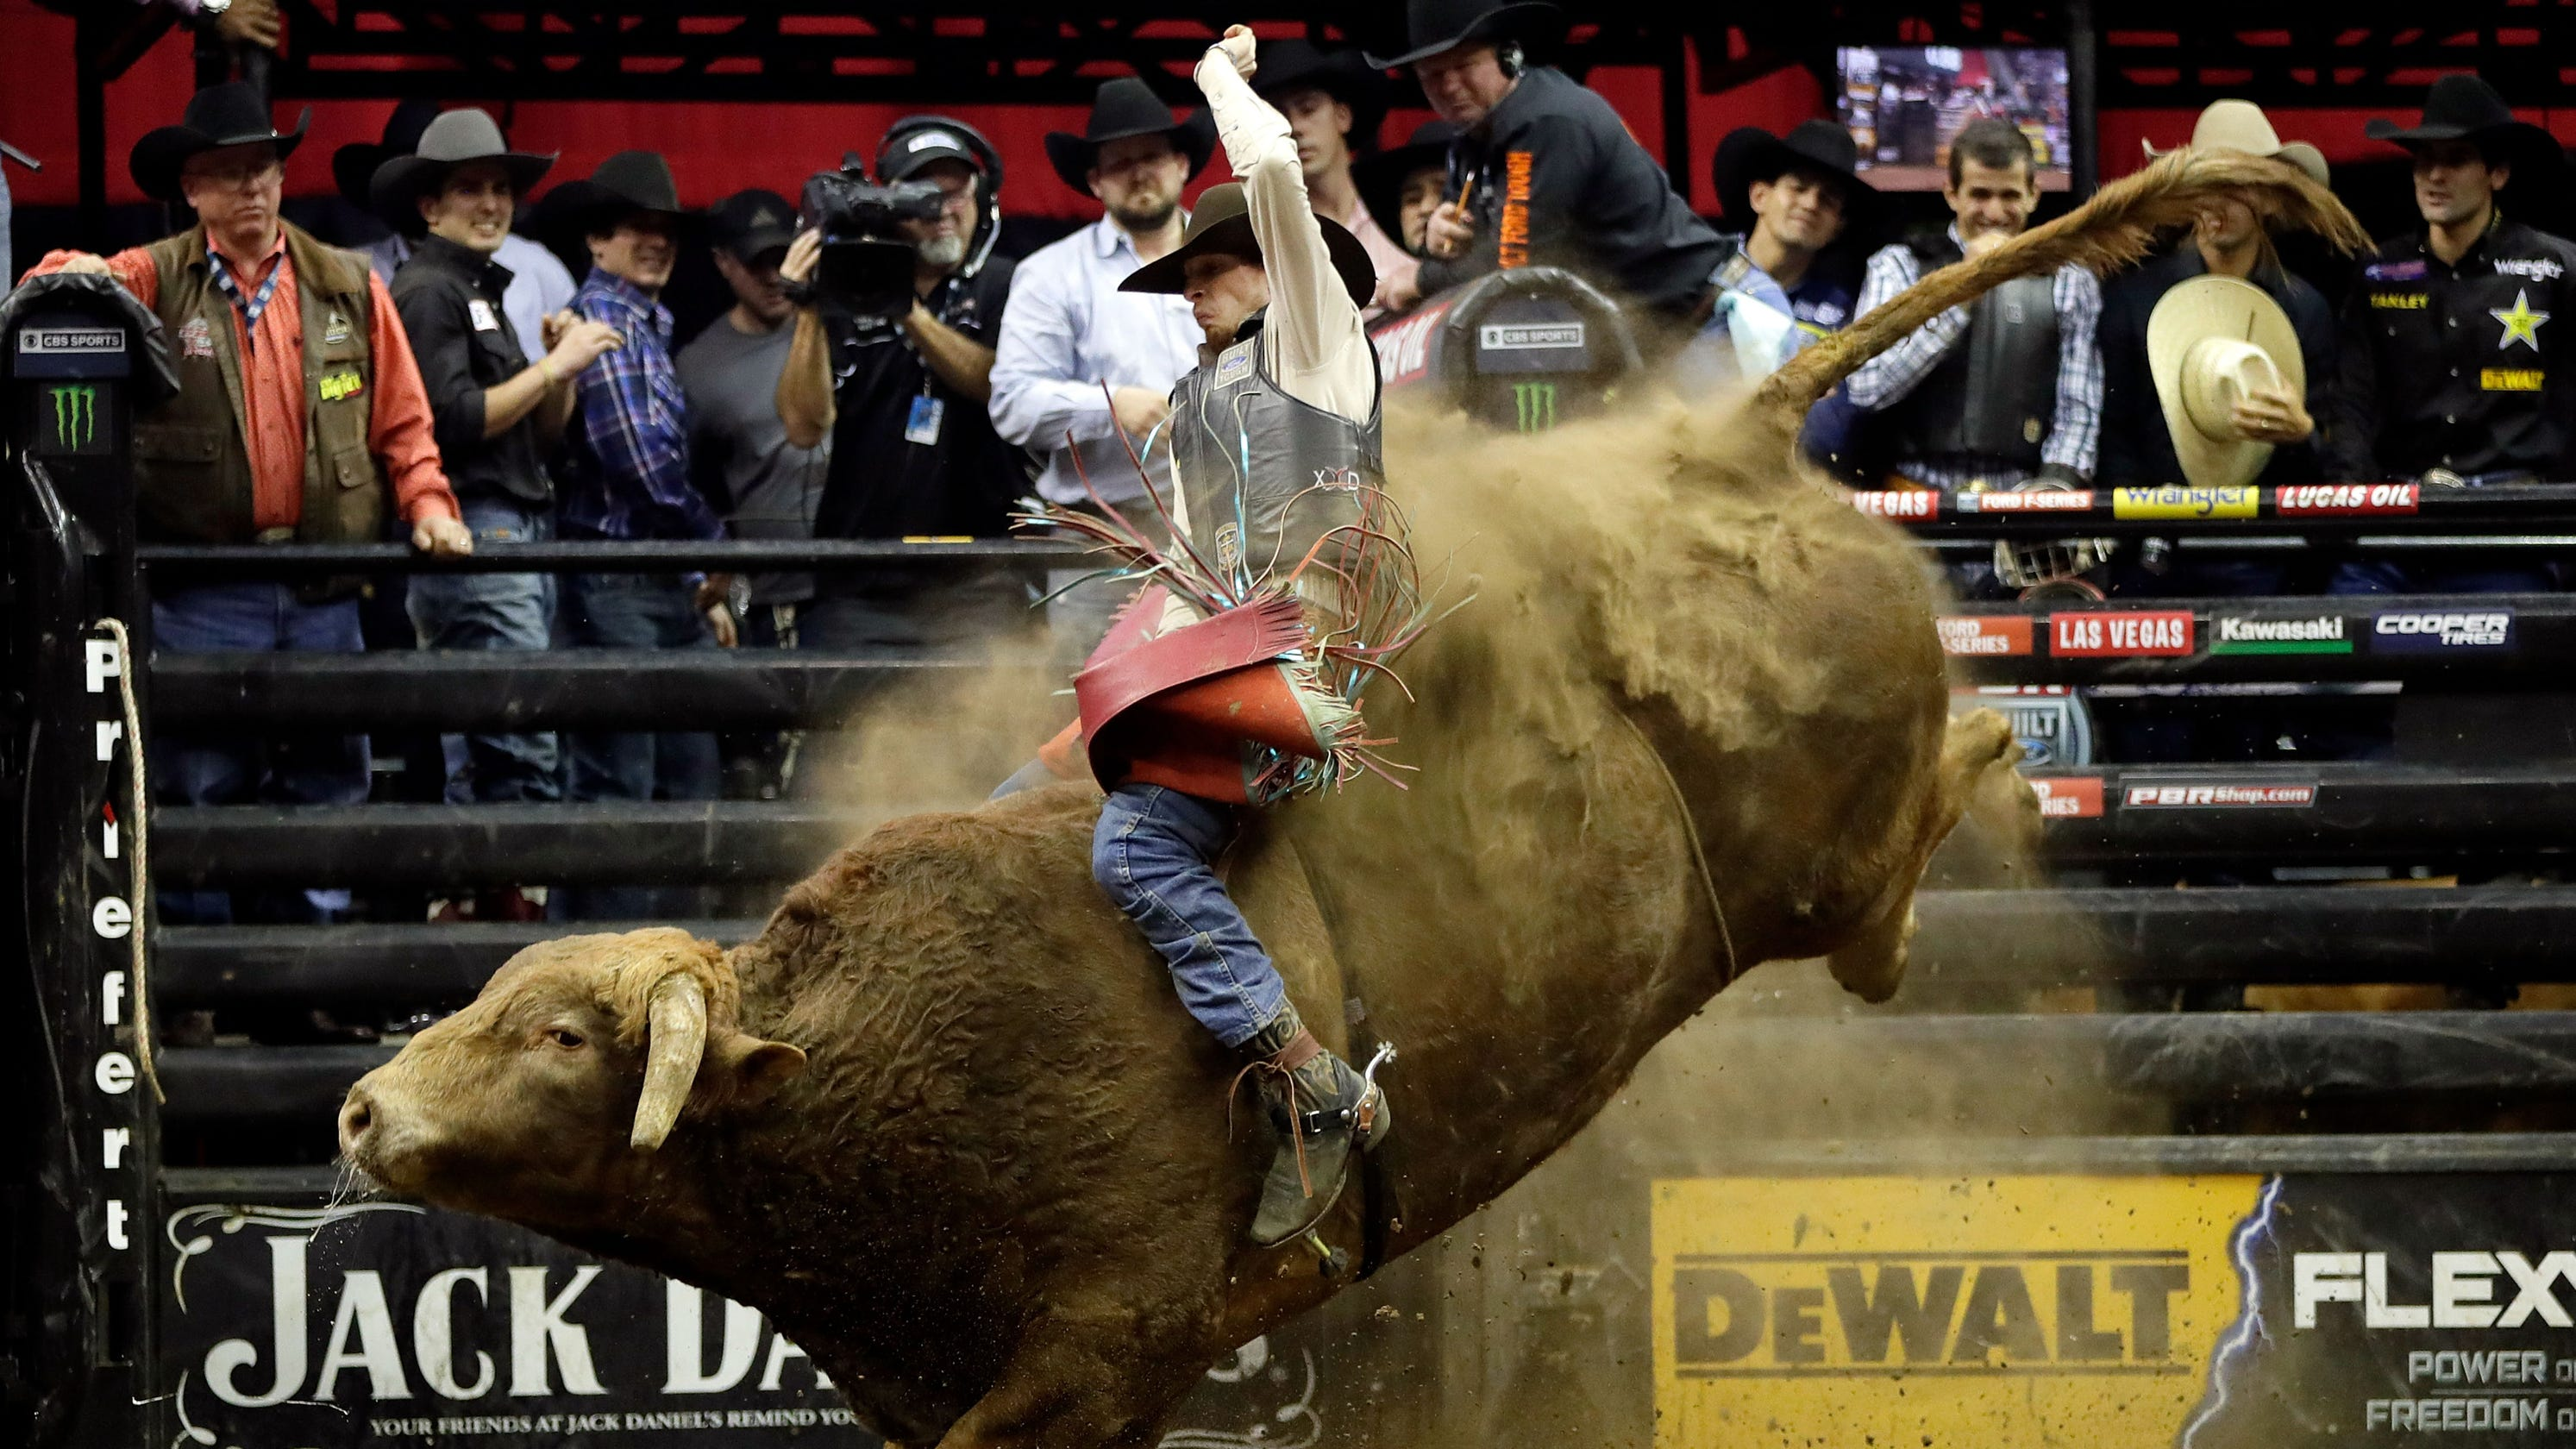 Bull Rider Mason Lowe Ranked No 18 Dies After Bull